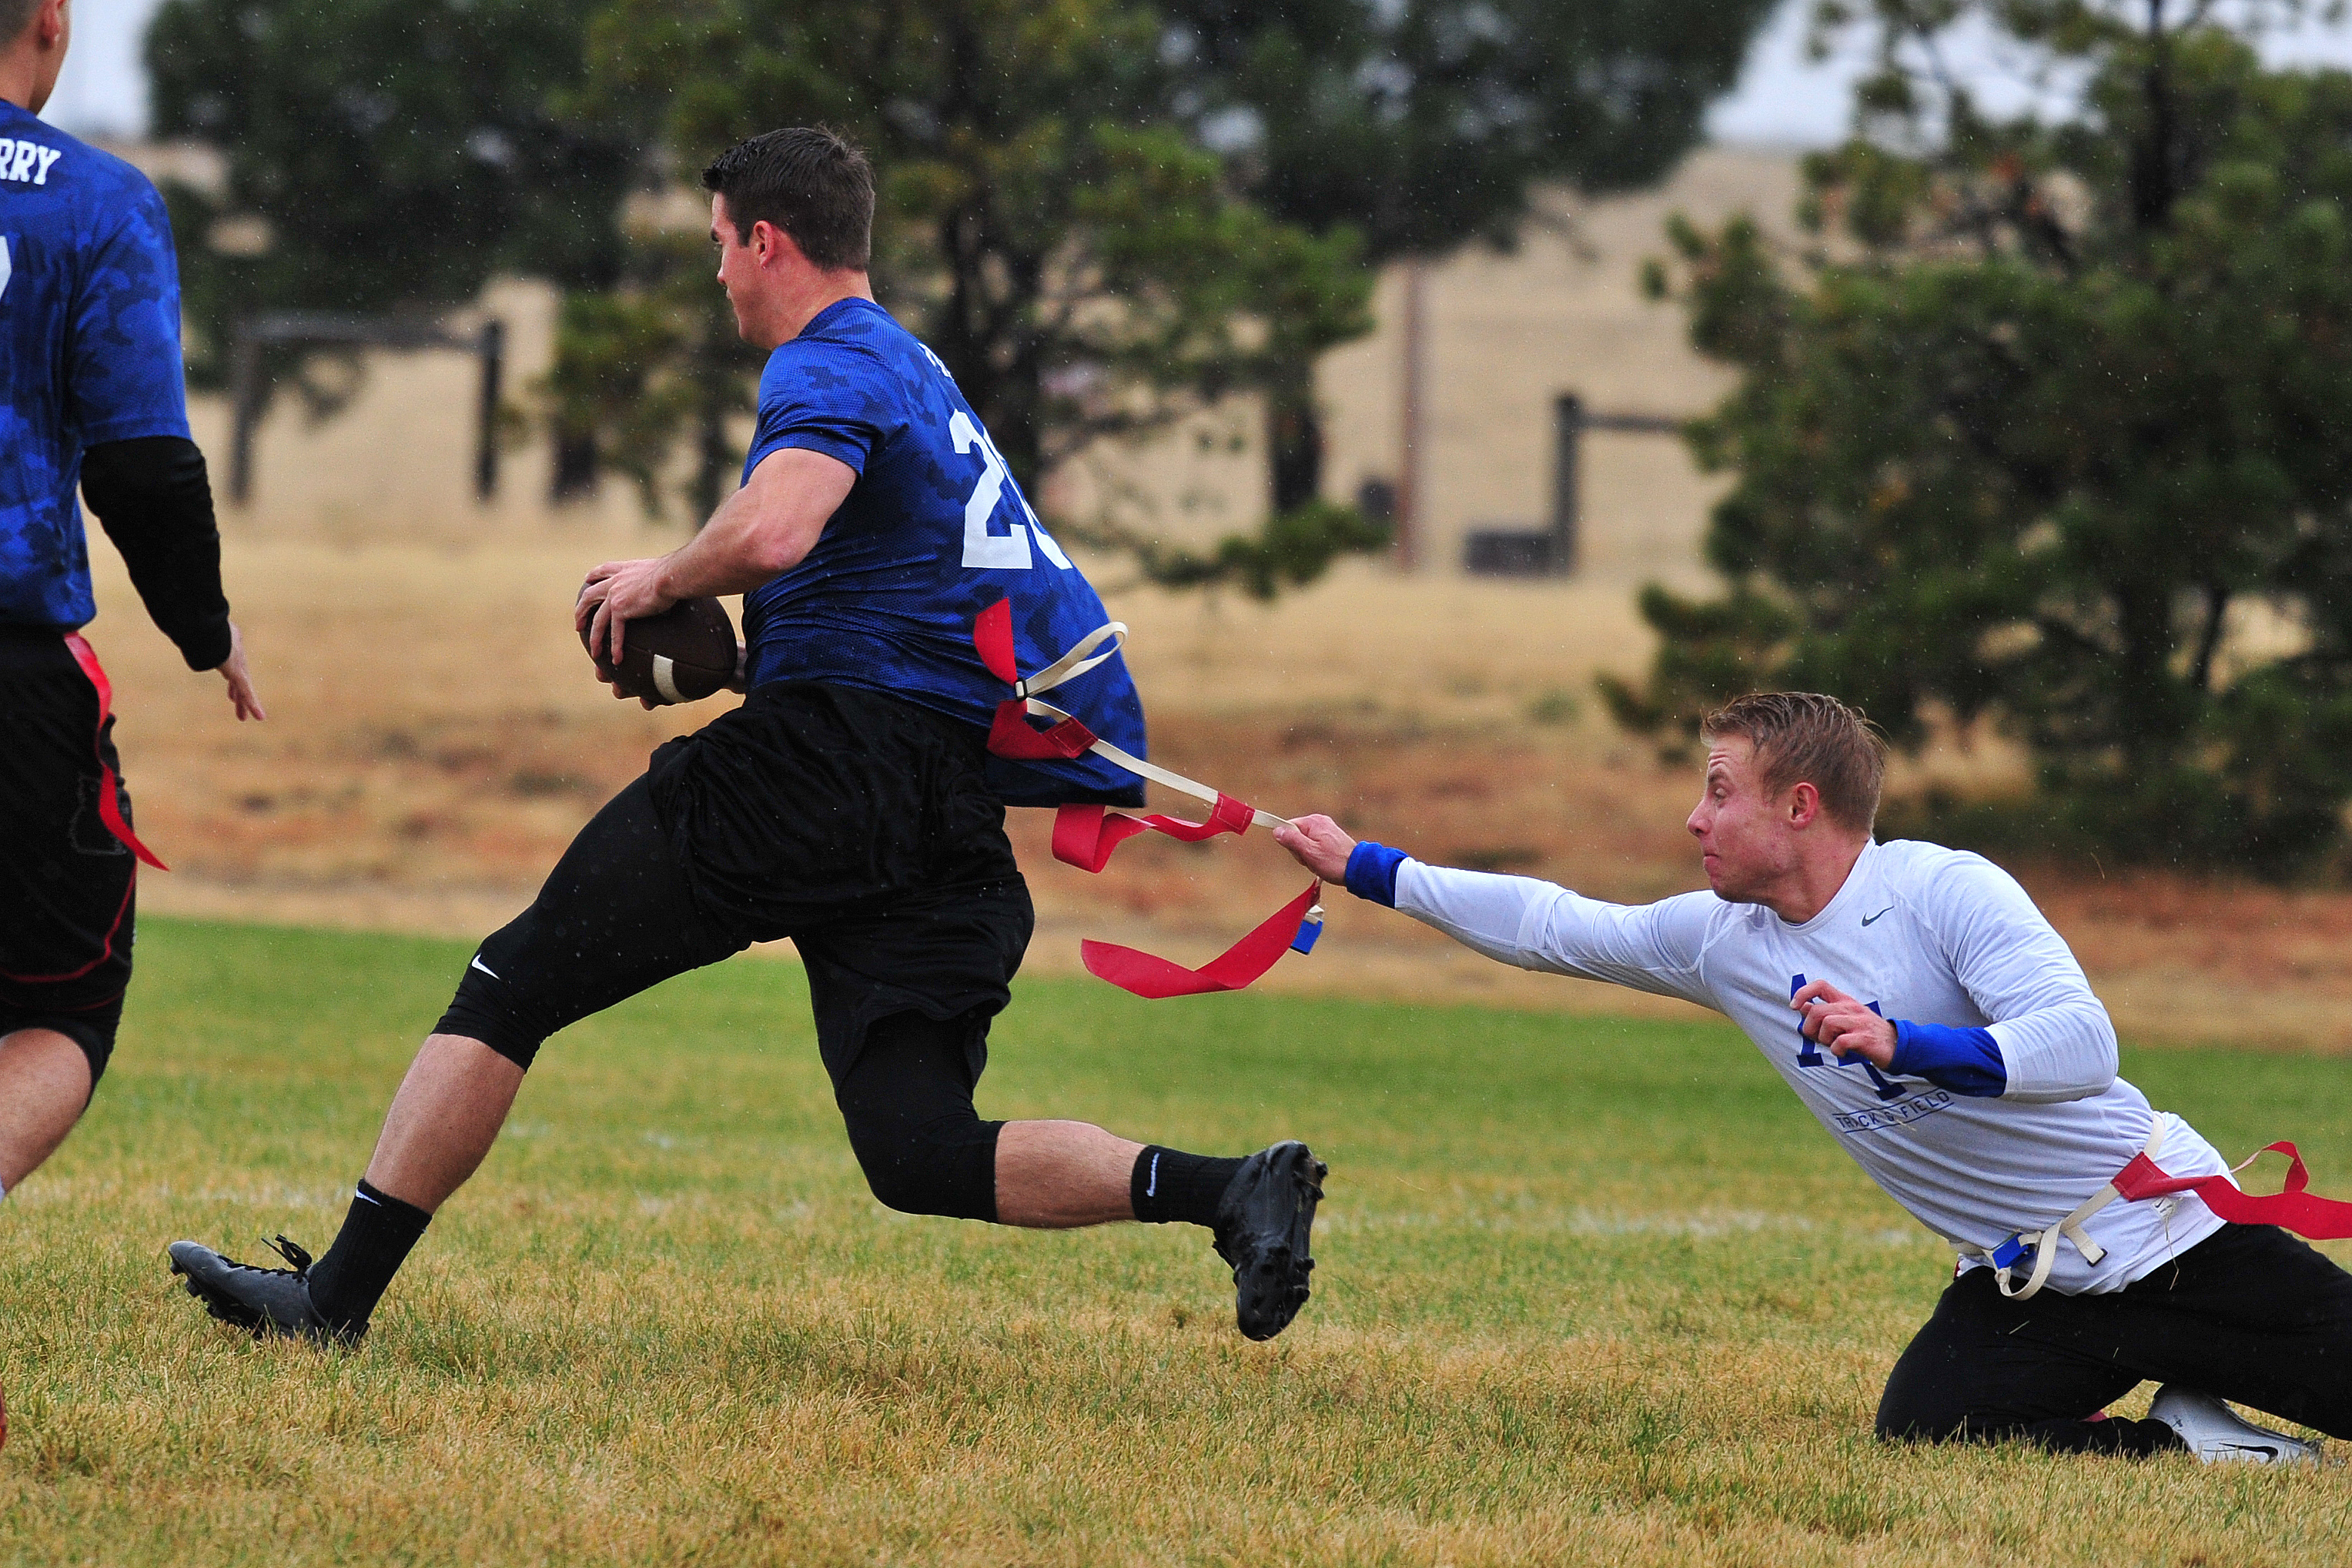 SCHRIEVER AIR FORCE BASE, Colo. -- The 50th Operations Support Squadron defeated the 4th Space Operations Squadron to claim the Wing Flag Football championship at Schriever AFB, Colorado 24 October, 2018. (U.S. Air Force Photo/Dennis Rogers)